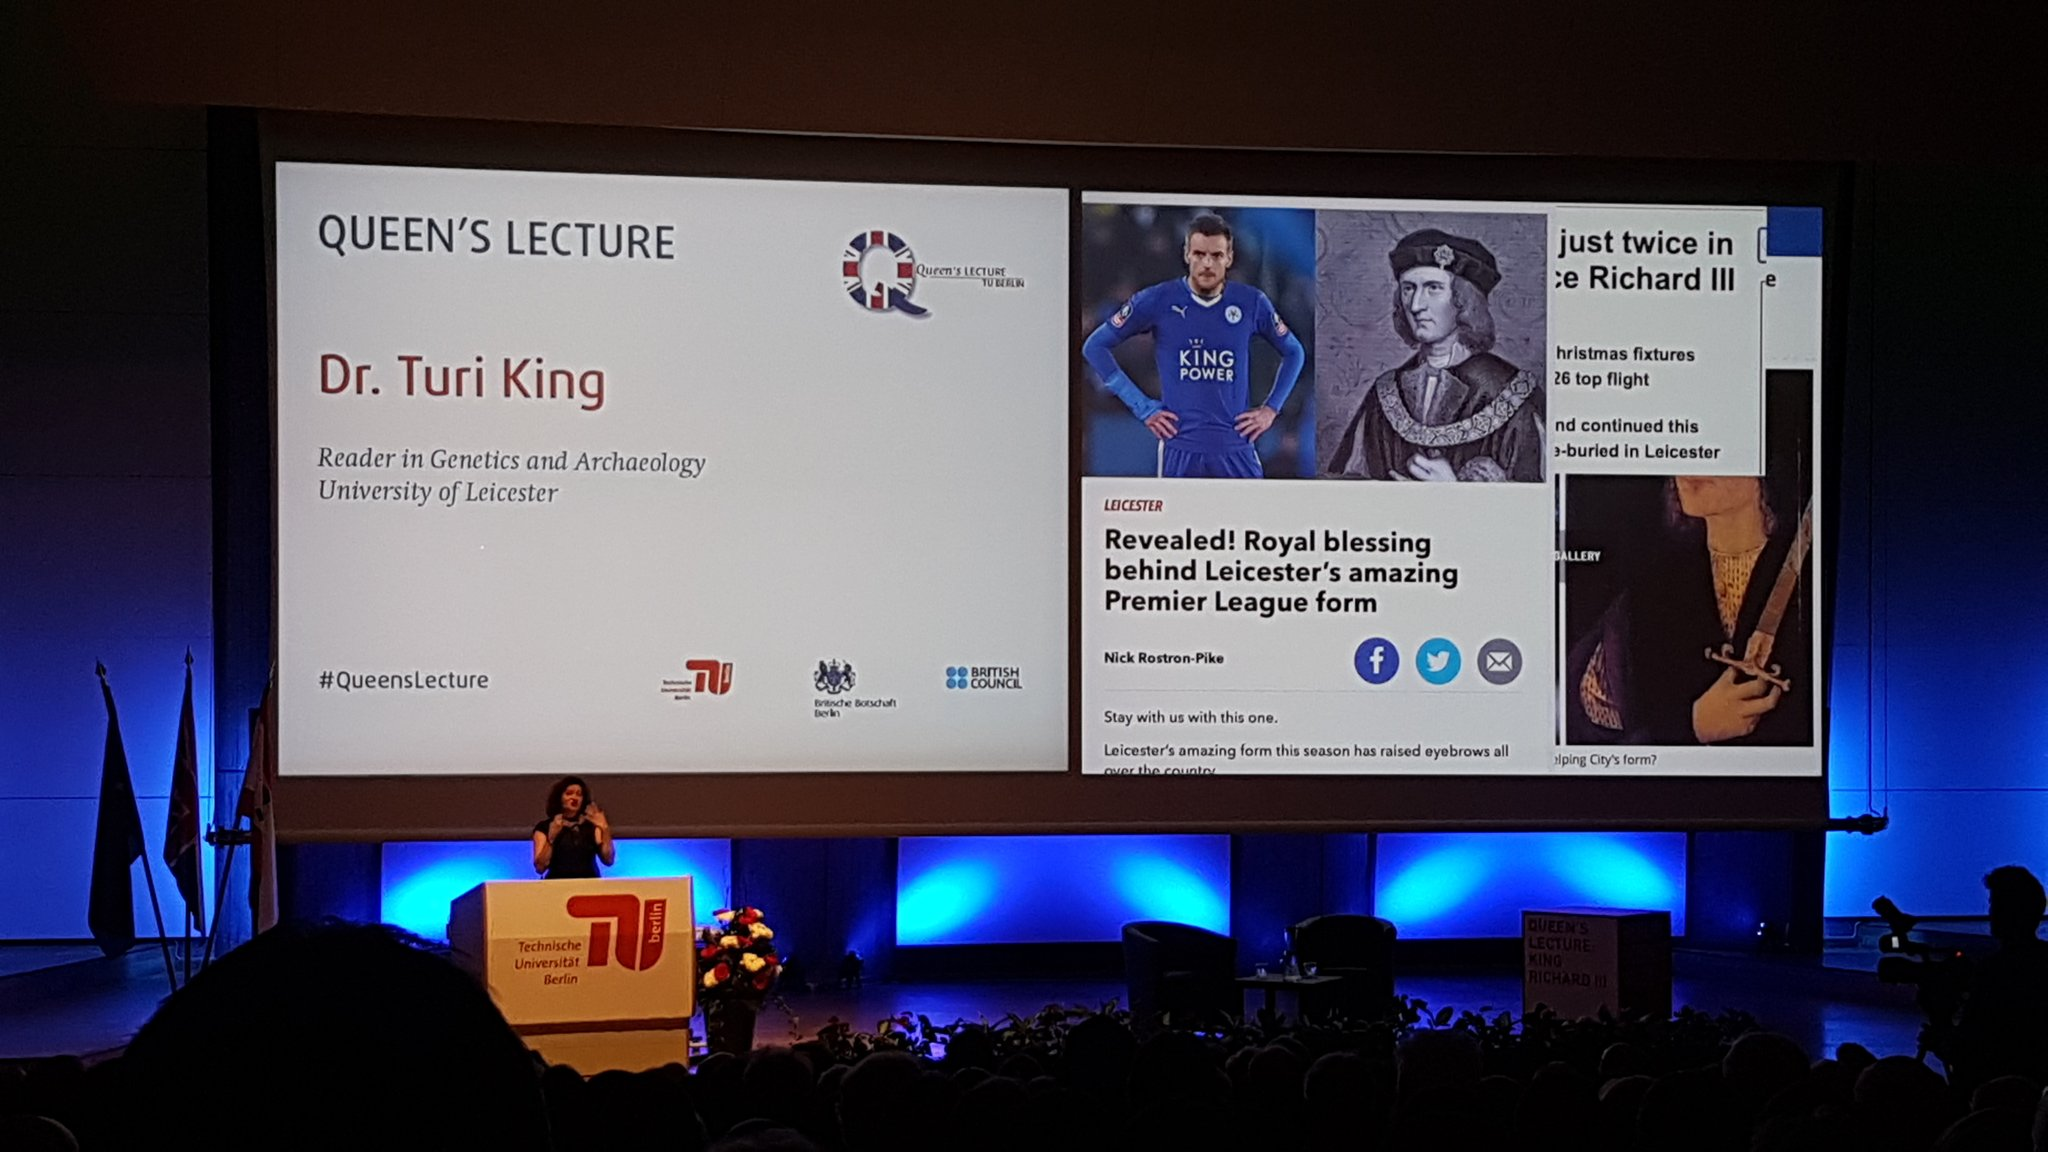 What a story #QueensLecture https://t.co/6fIKWr5bAX